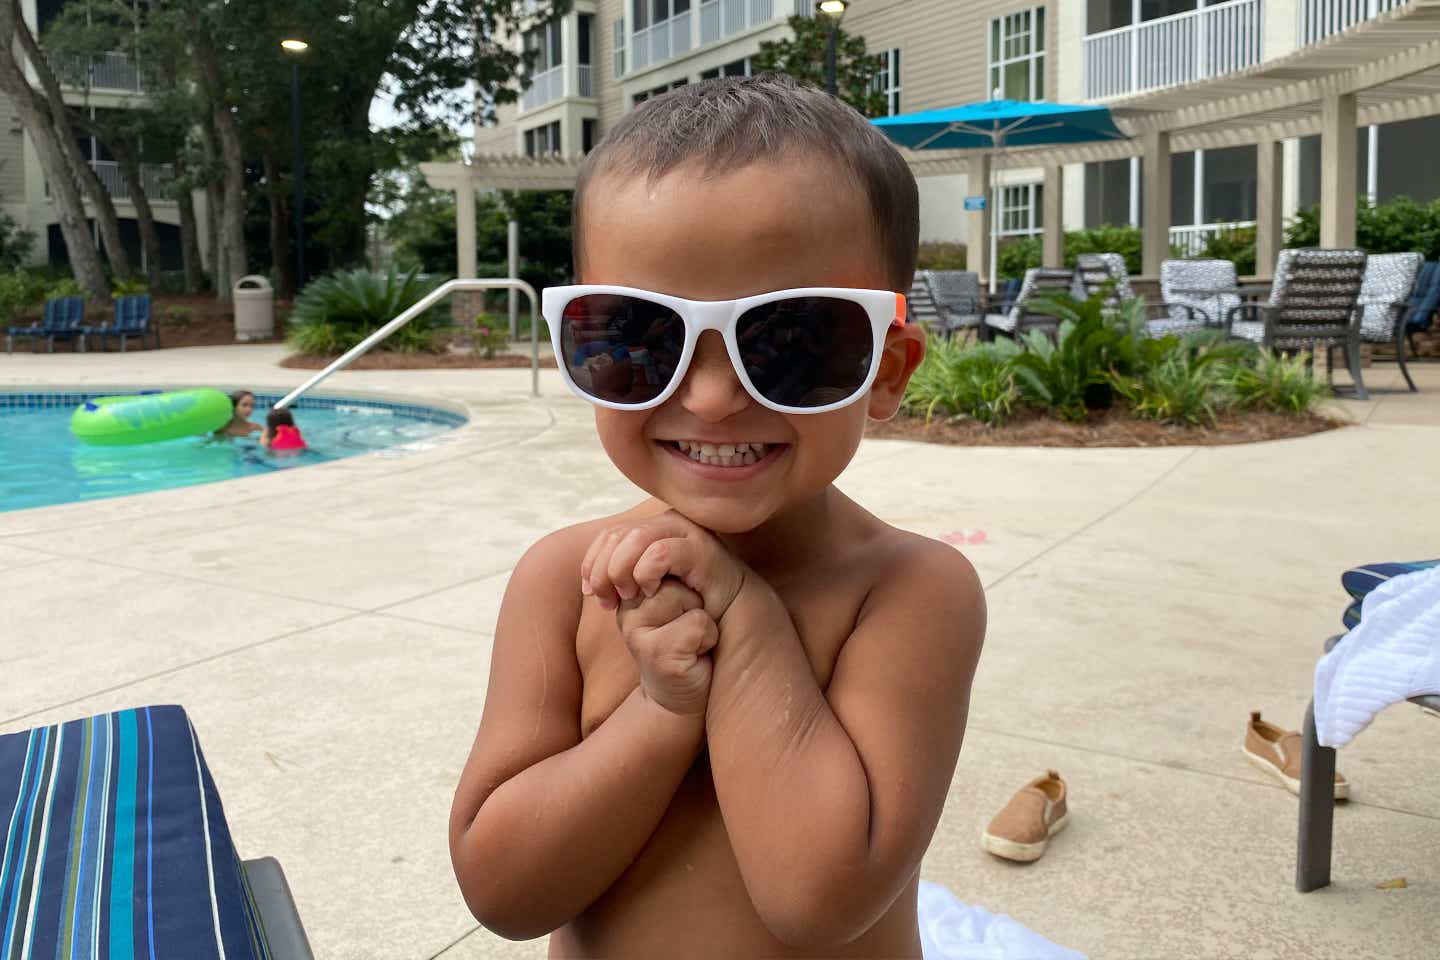 Brenda's son, Benjamin, wears white sunglasses next to mommy at the pool.